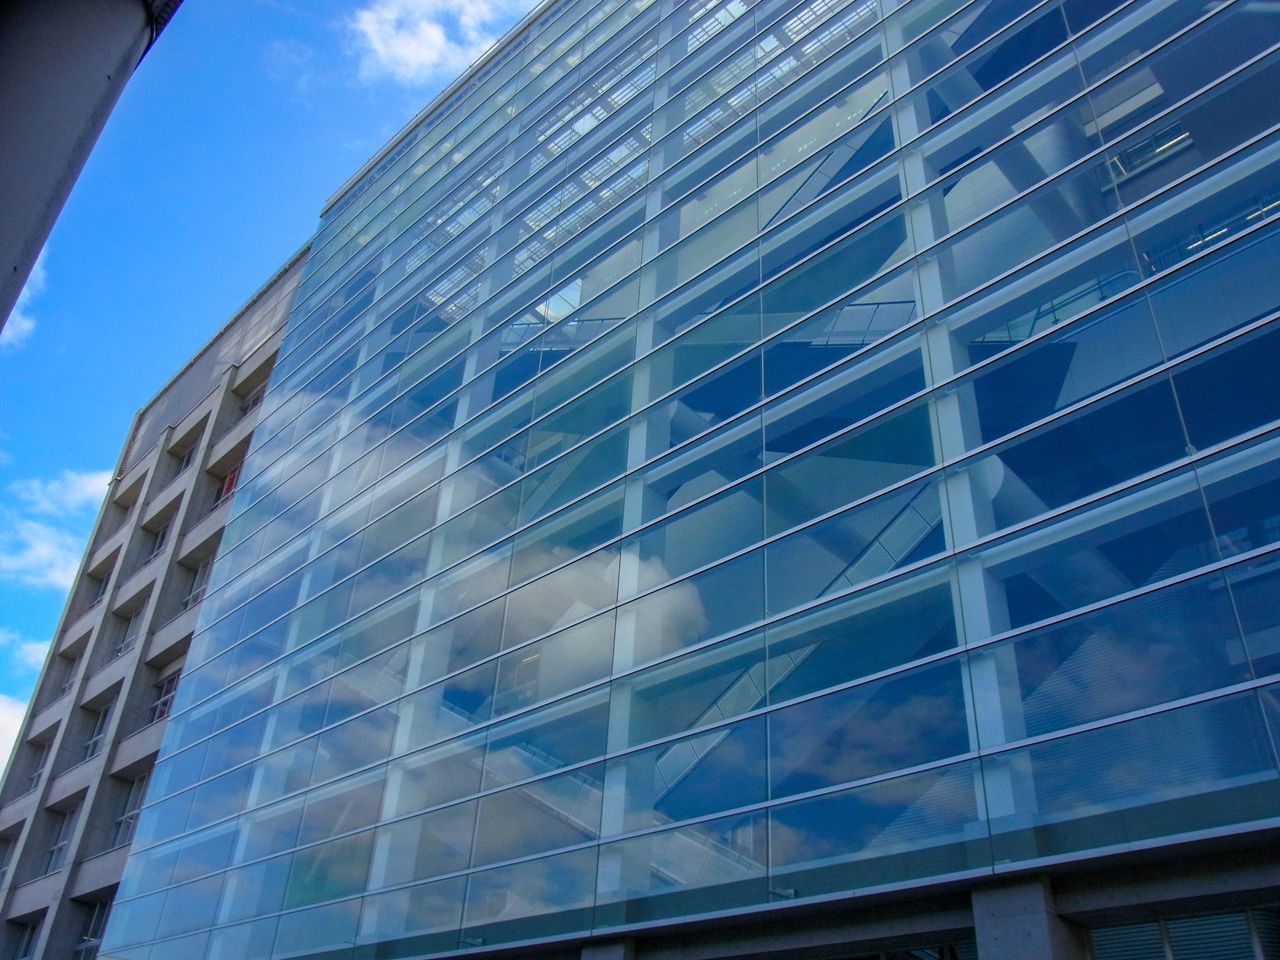 LOW ANGLE VIEW OF MODERN OFFICE BUILDING AGAINST BLUE SKY